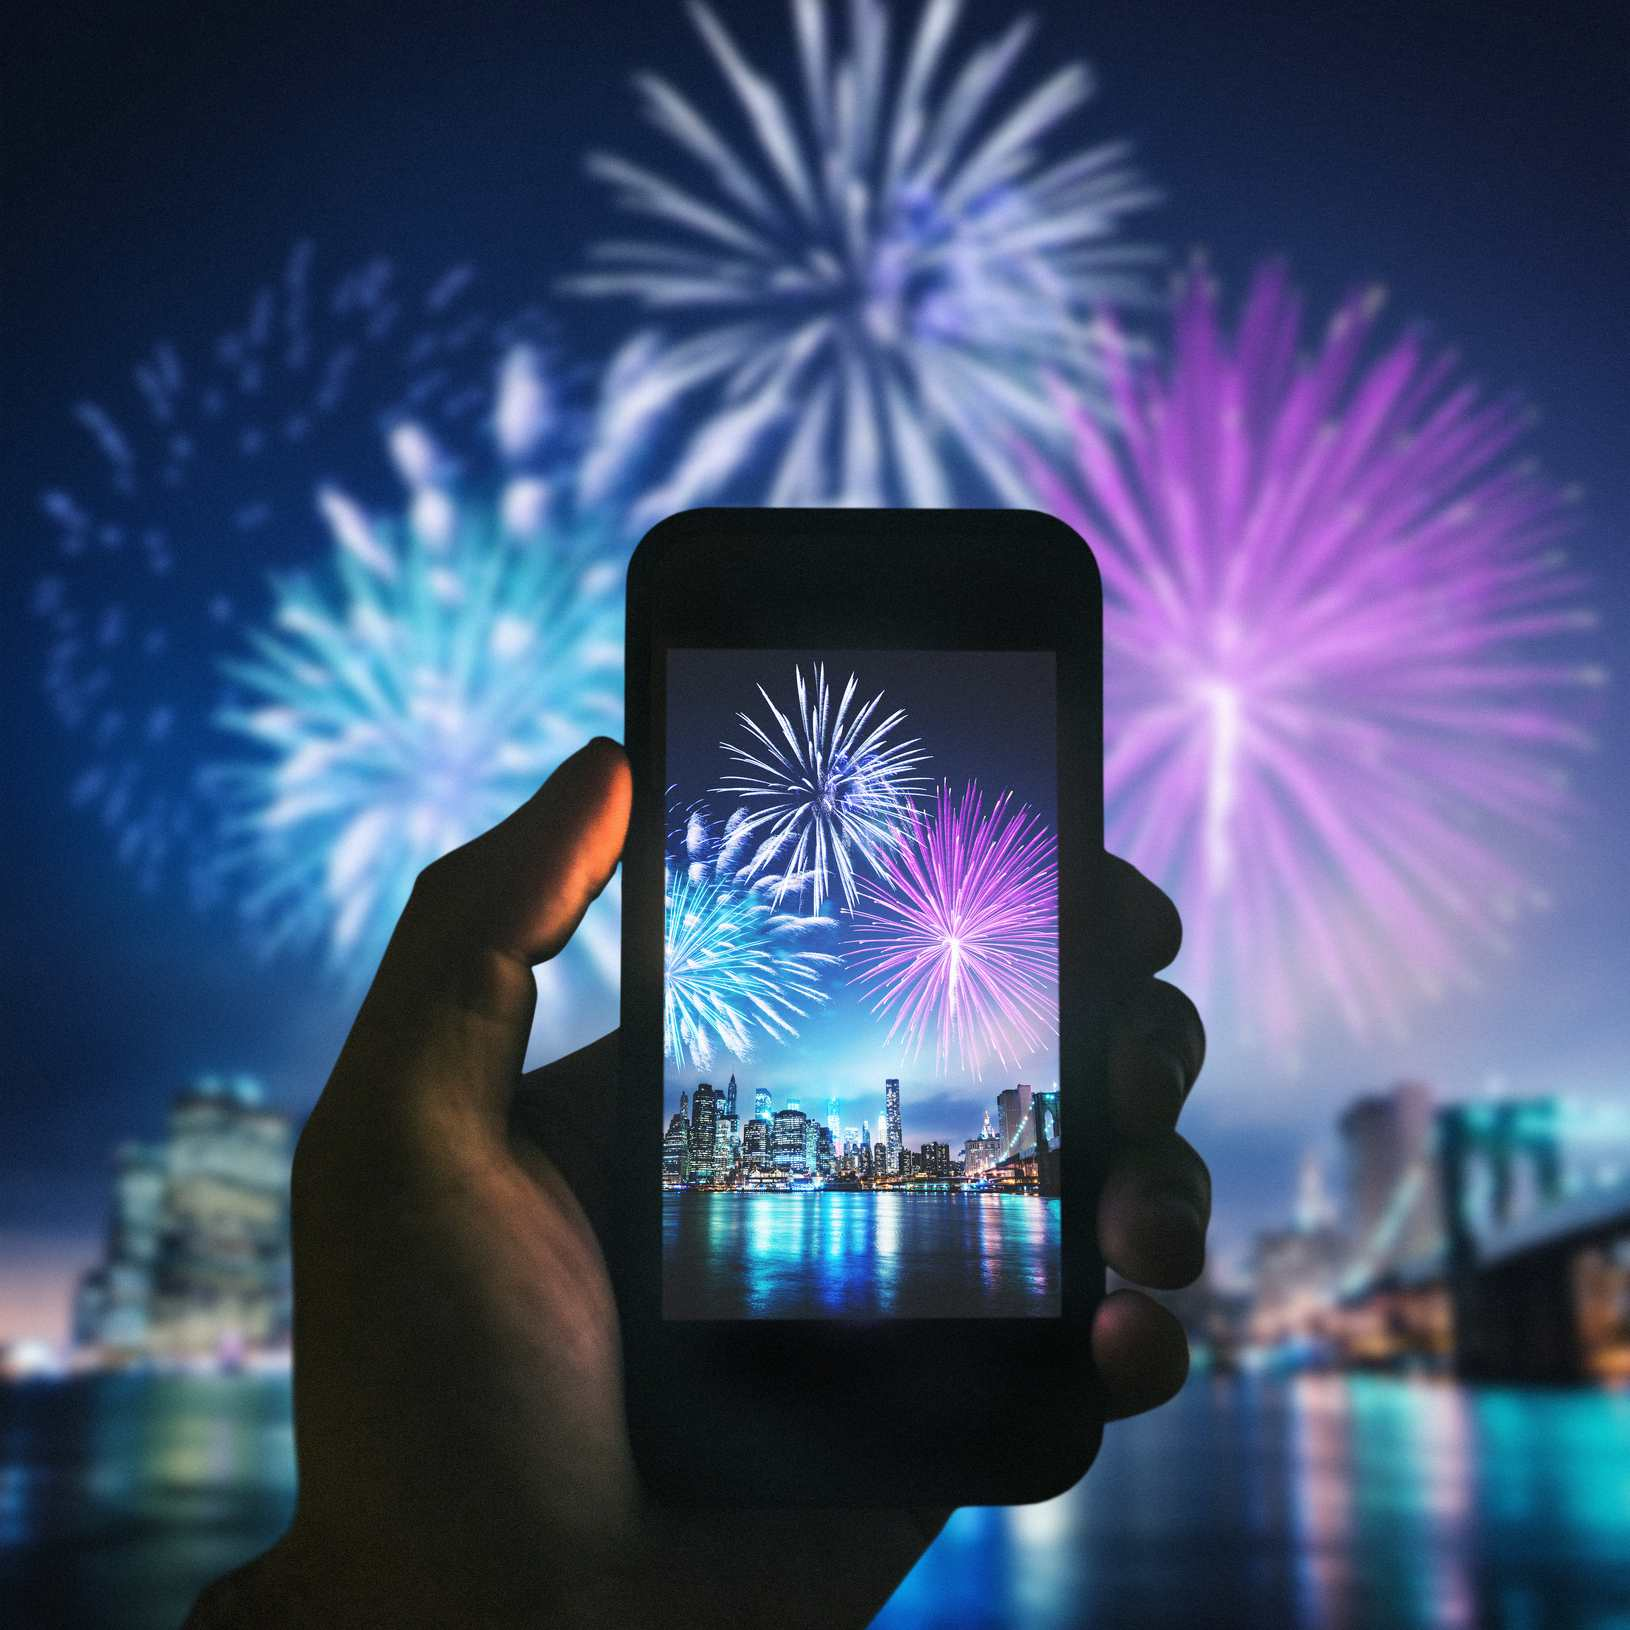 Taking pictures of fireworks using an iPhone